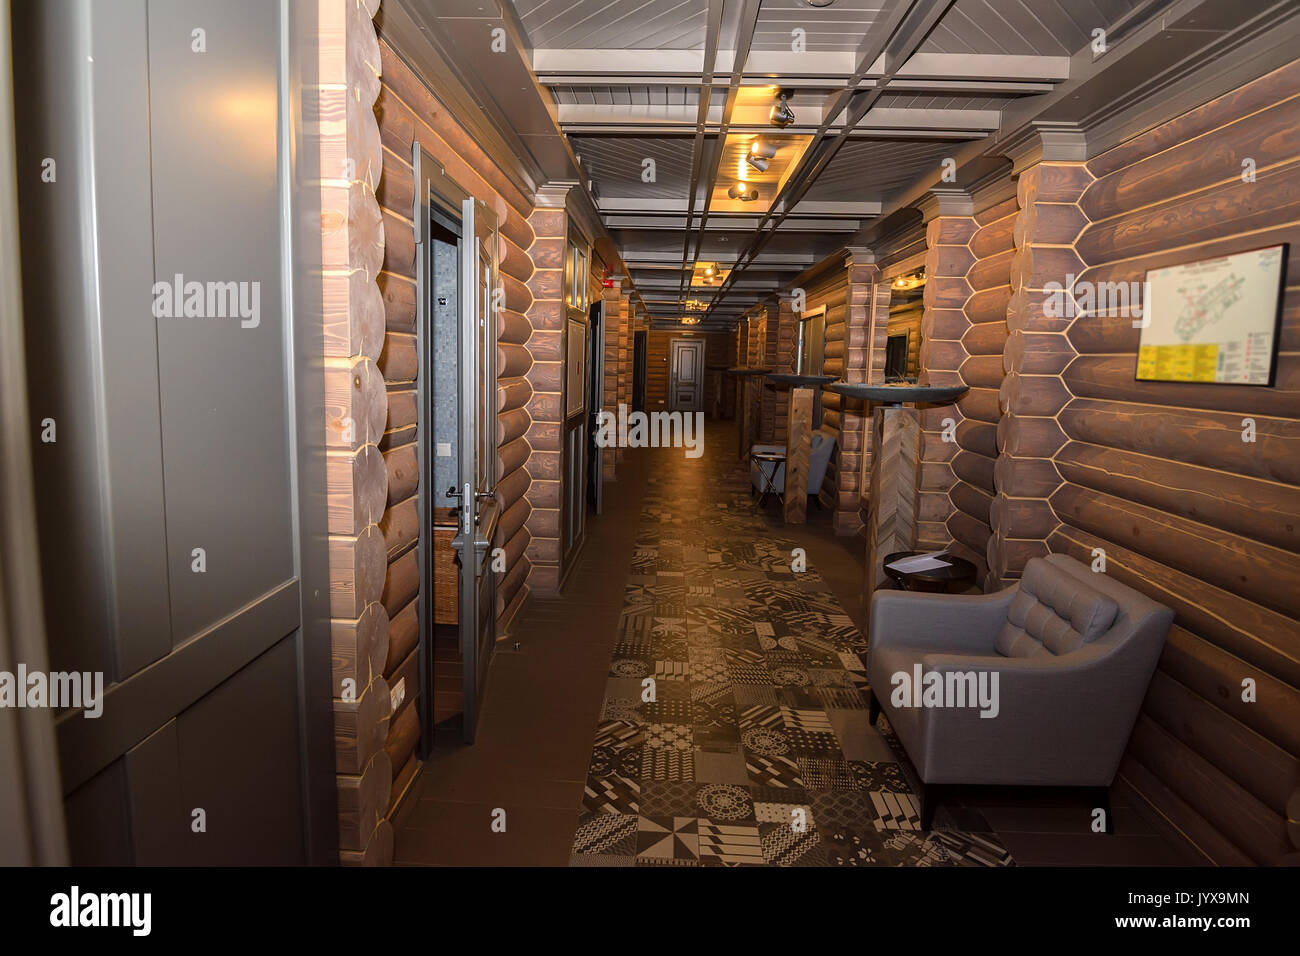 Log house interior - Stock Image